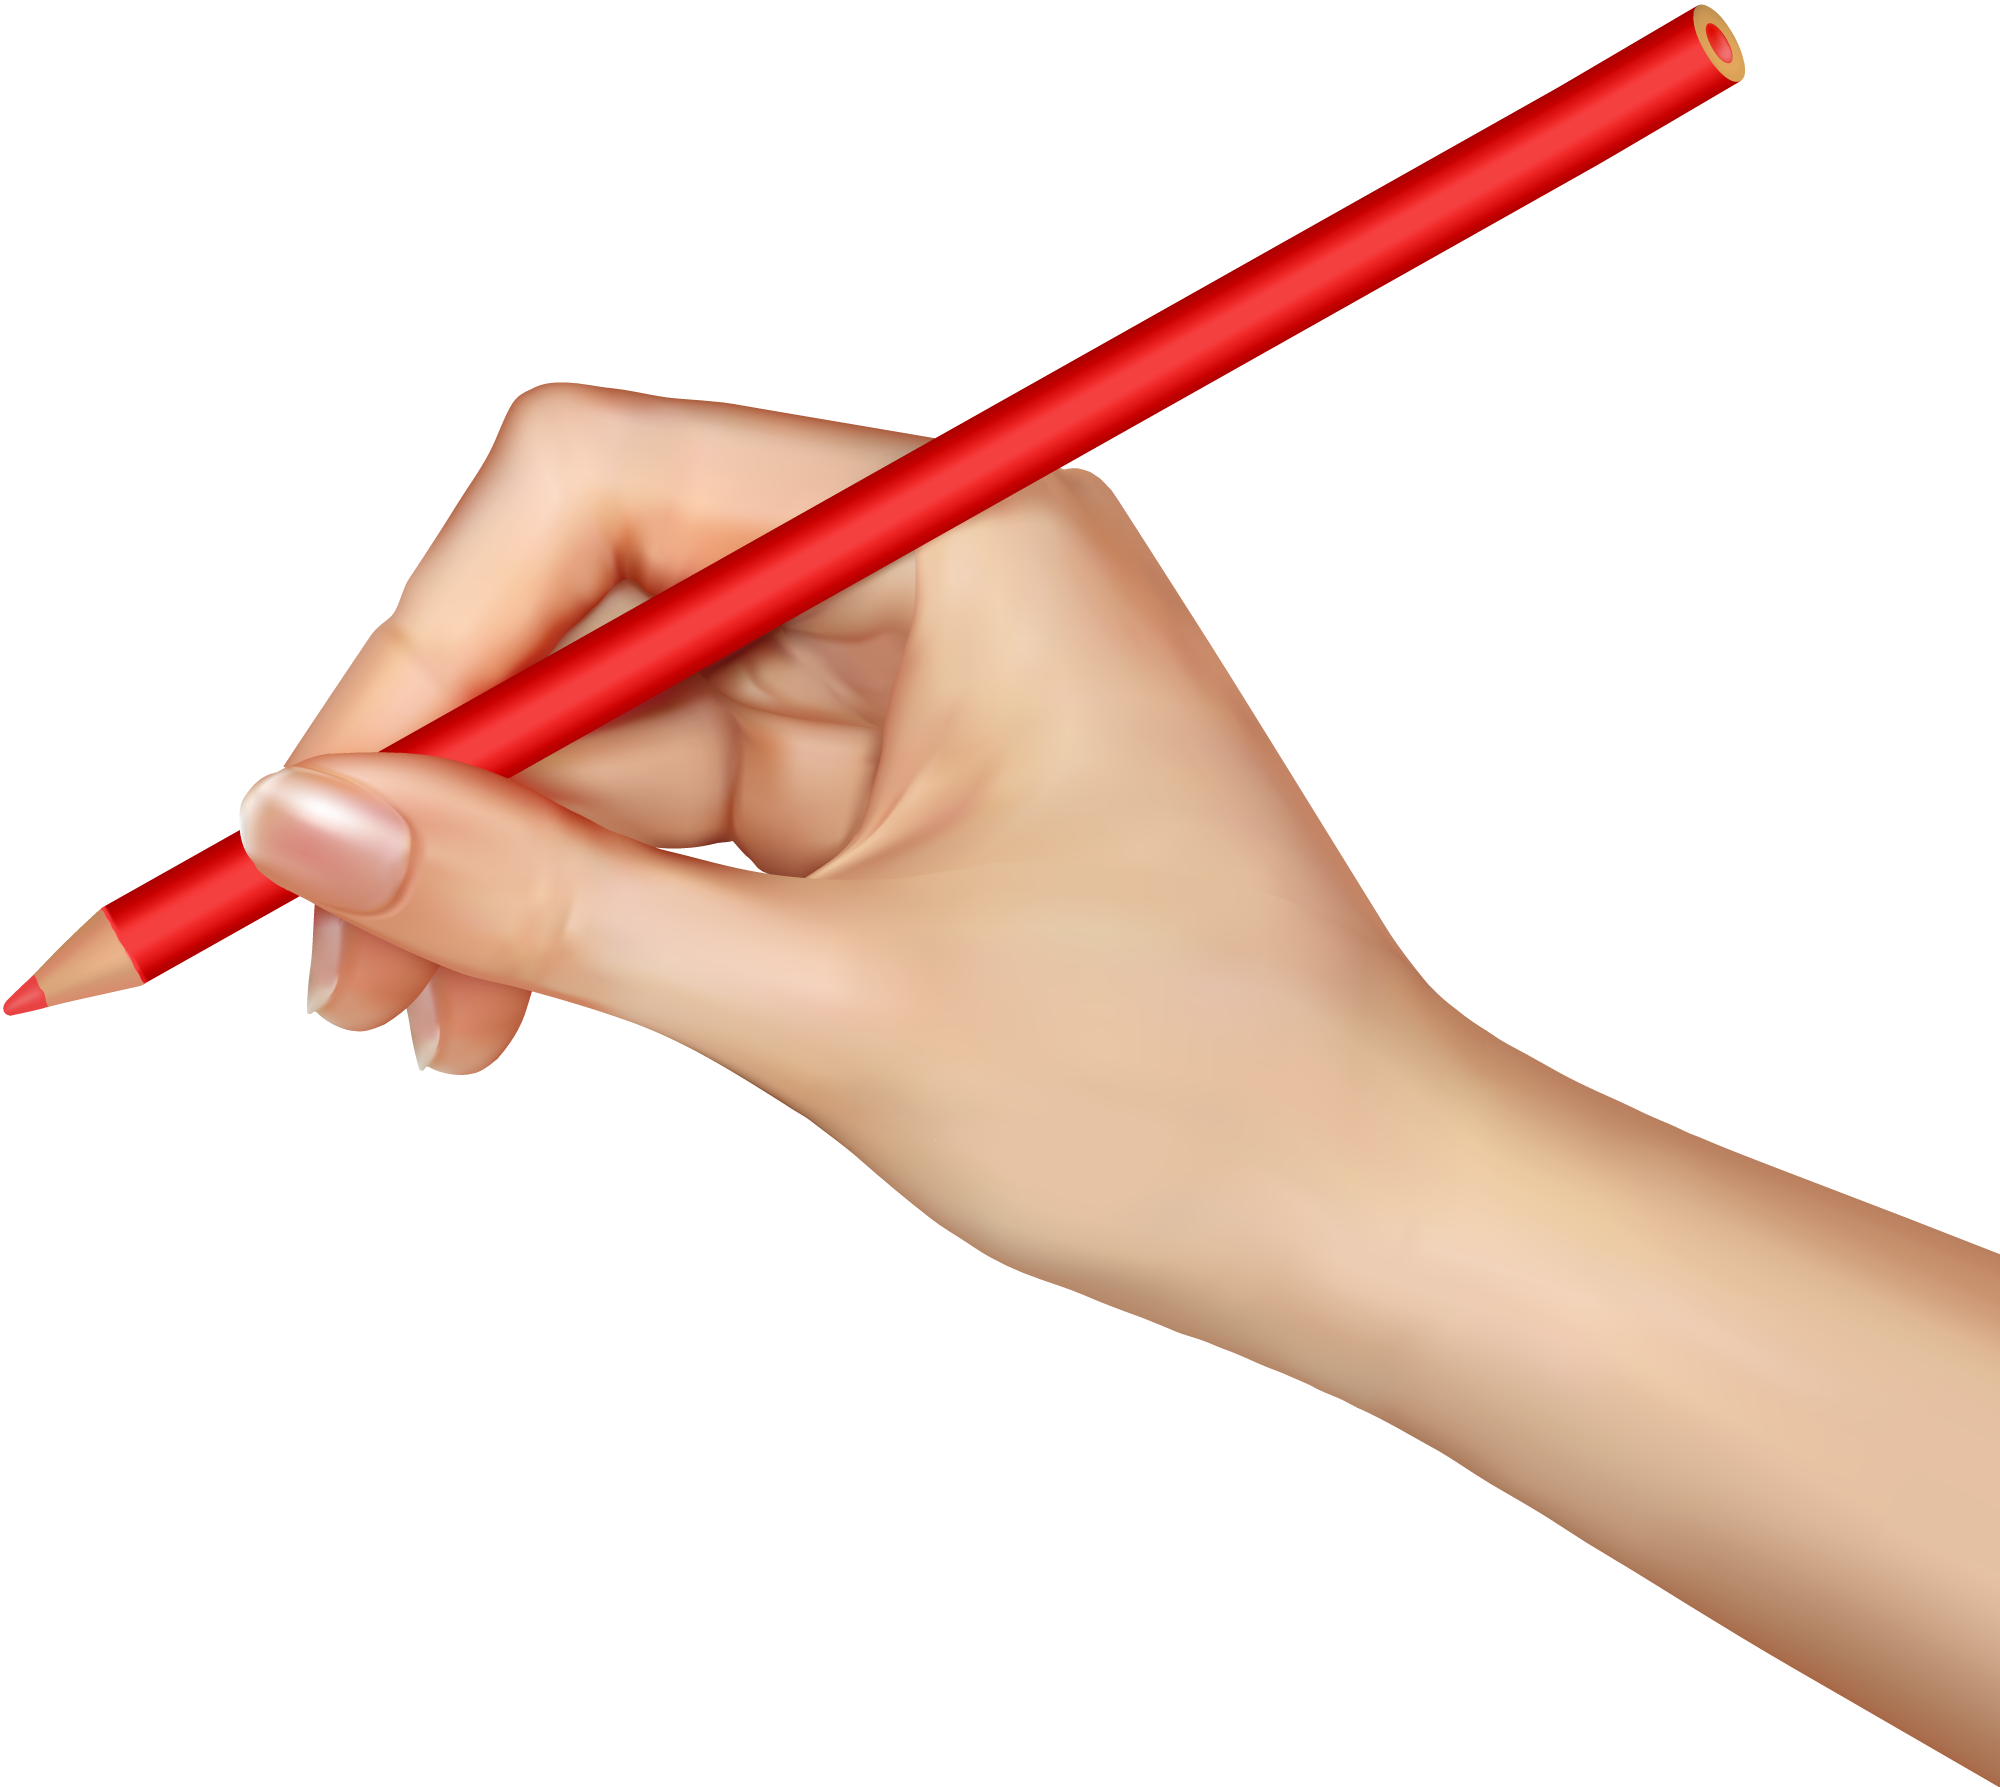 Pencil Red Hands Png image #44762